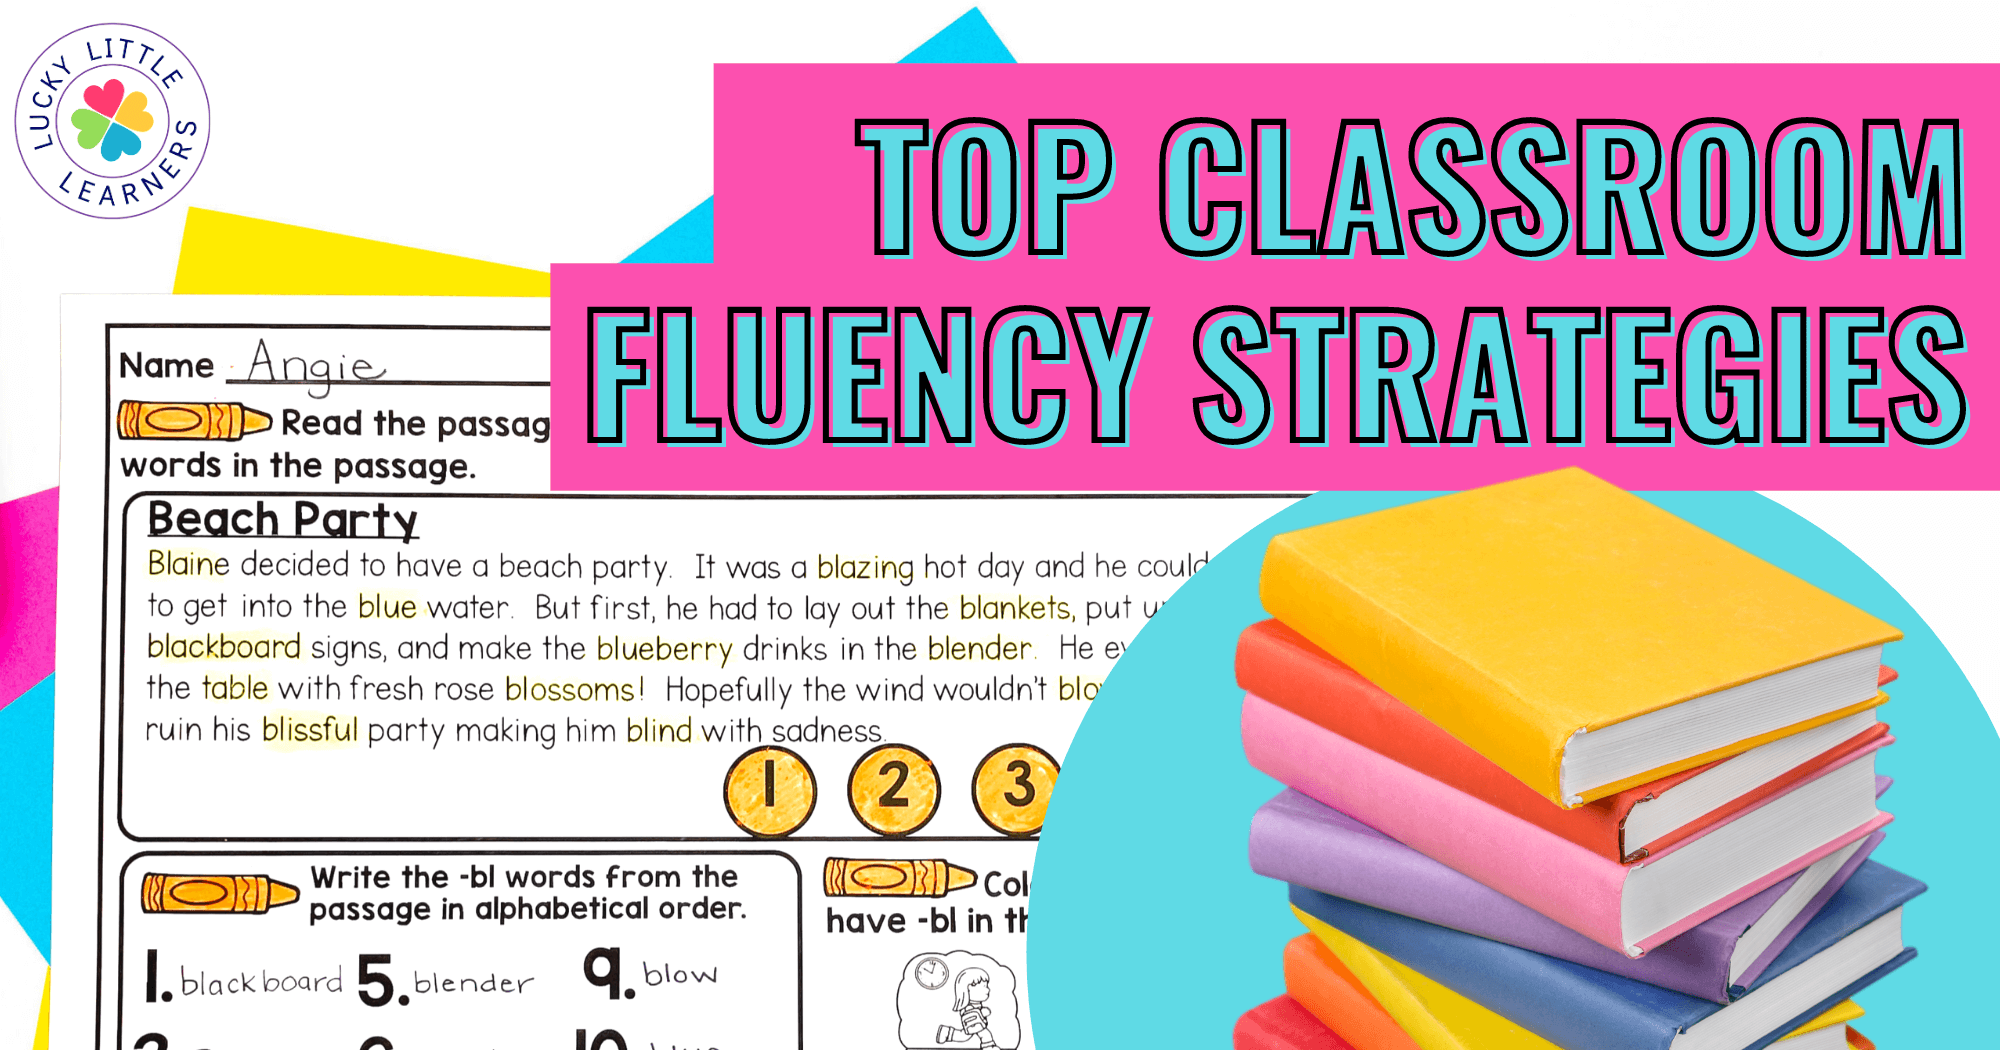 Top Classroom Fluency Strategies